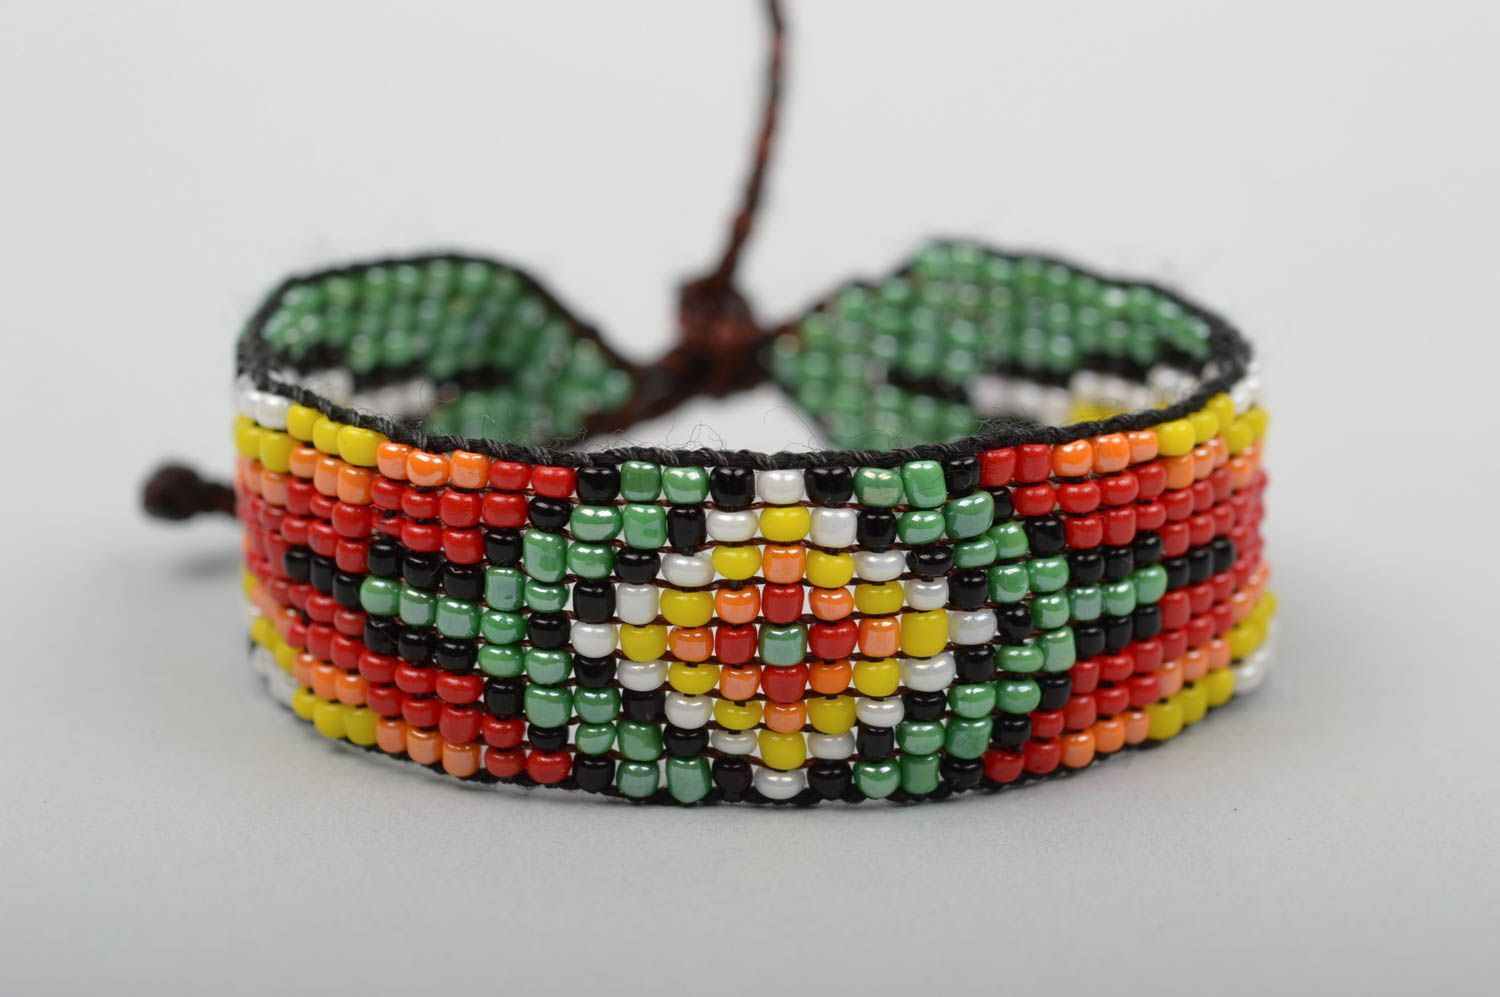 Handmade beaded bracelet fashion jewelry unique jewelry gifts for girl photo 1